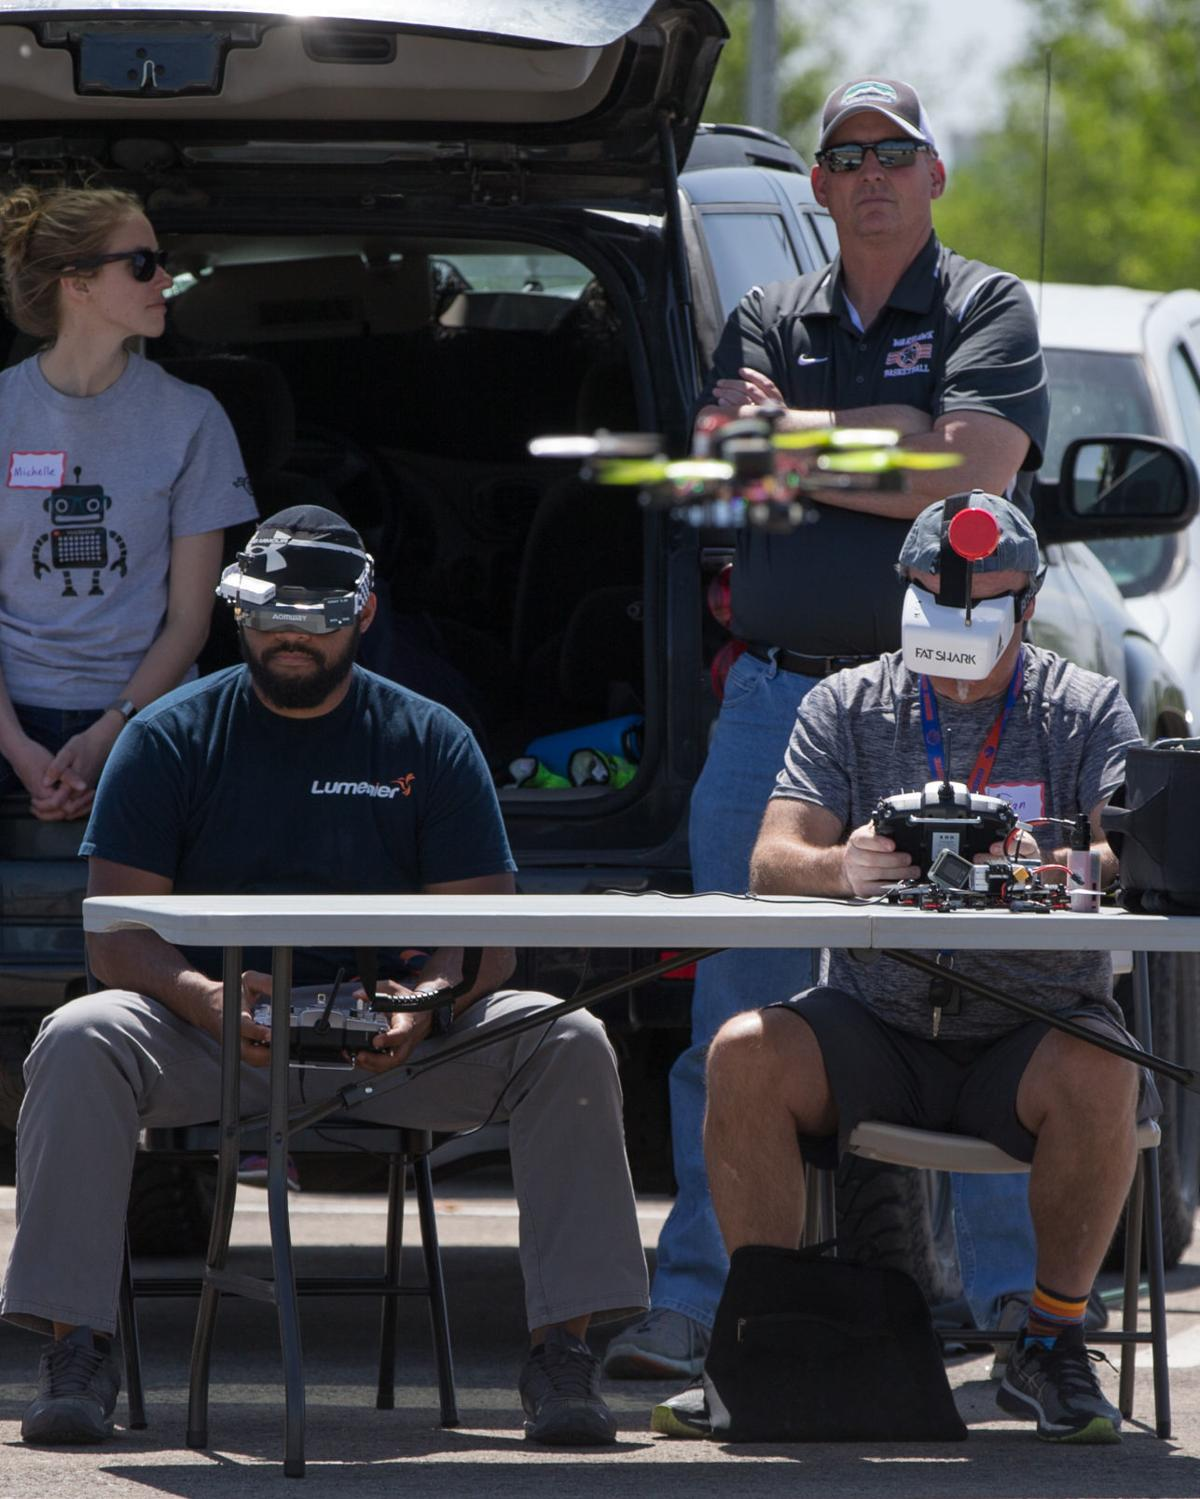 Educators Take Advanced Drone Flight Workshop In Nampa